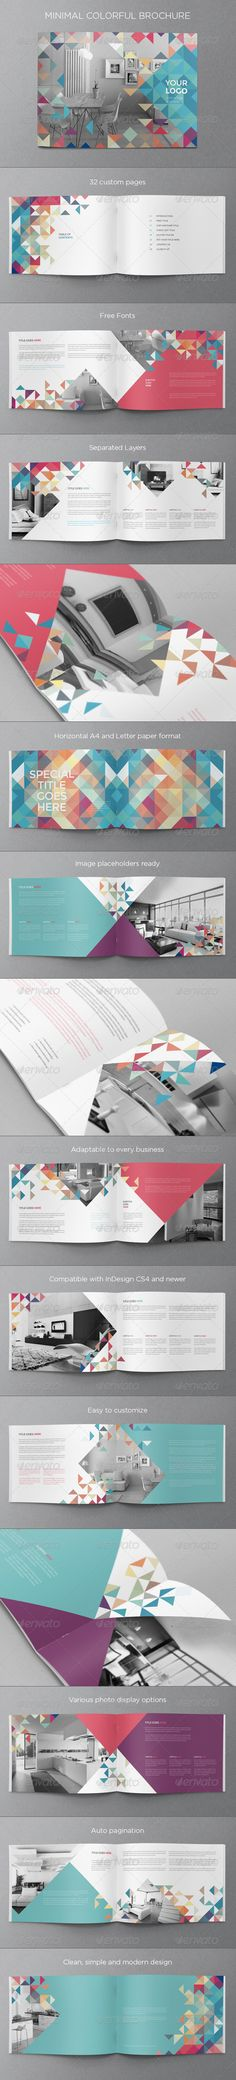 Buy Minimal Colorful Brochure by AbraDesign on GraphicRiver. MINIMAL COLORFUL BROCHURE This brochure is an ideal way to showcase your business in an original way. Layout Design, Graphisches Design, Print Layout, Print Design, Logo Design, Design Brochure, Booklet Design, Brochure Template, Design Graphique